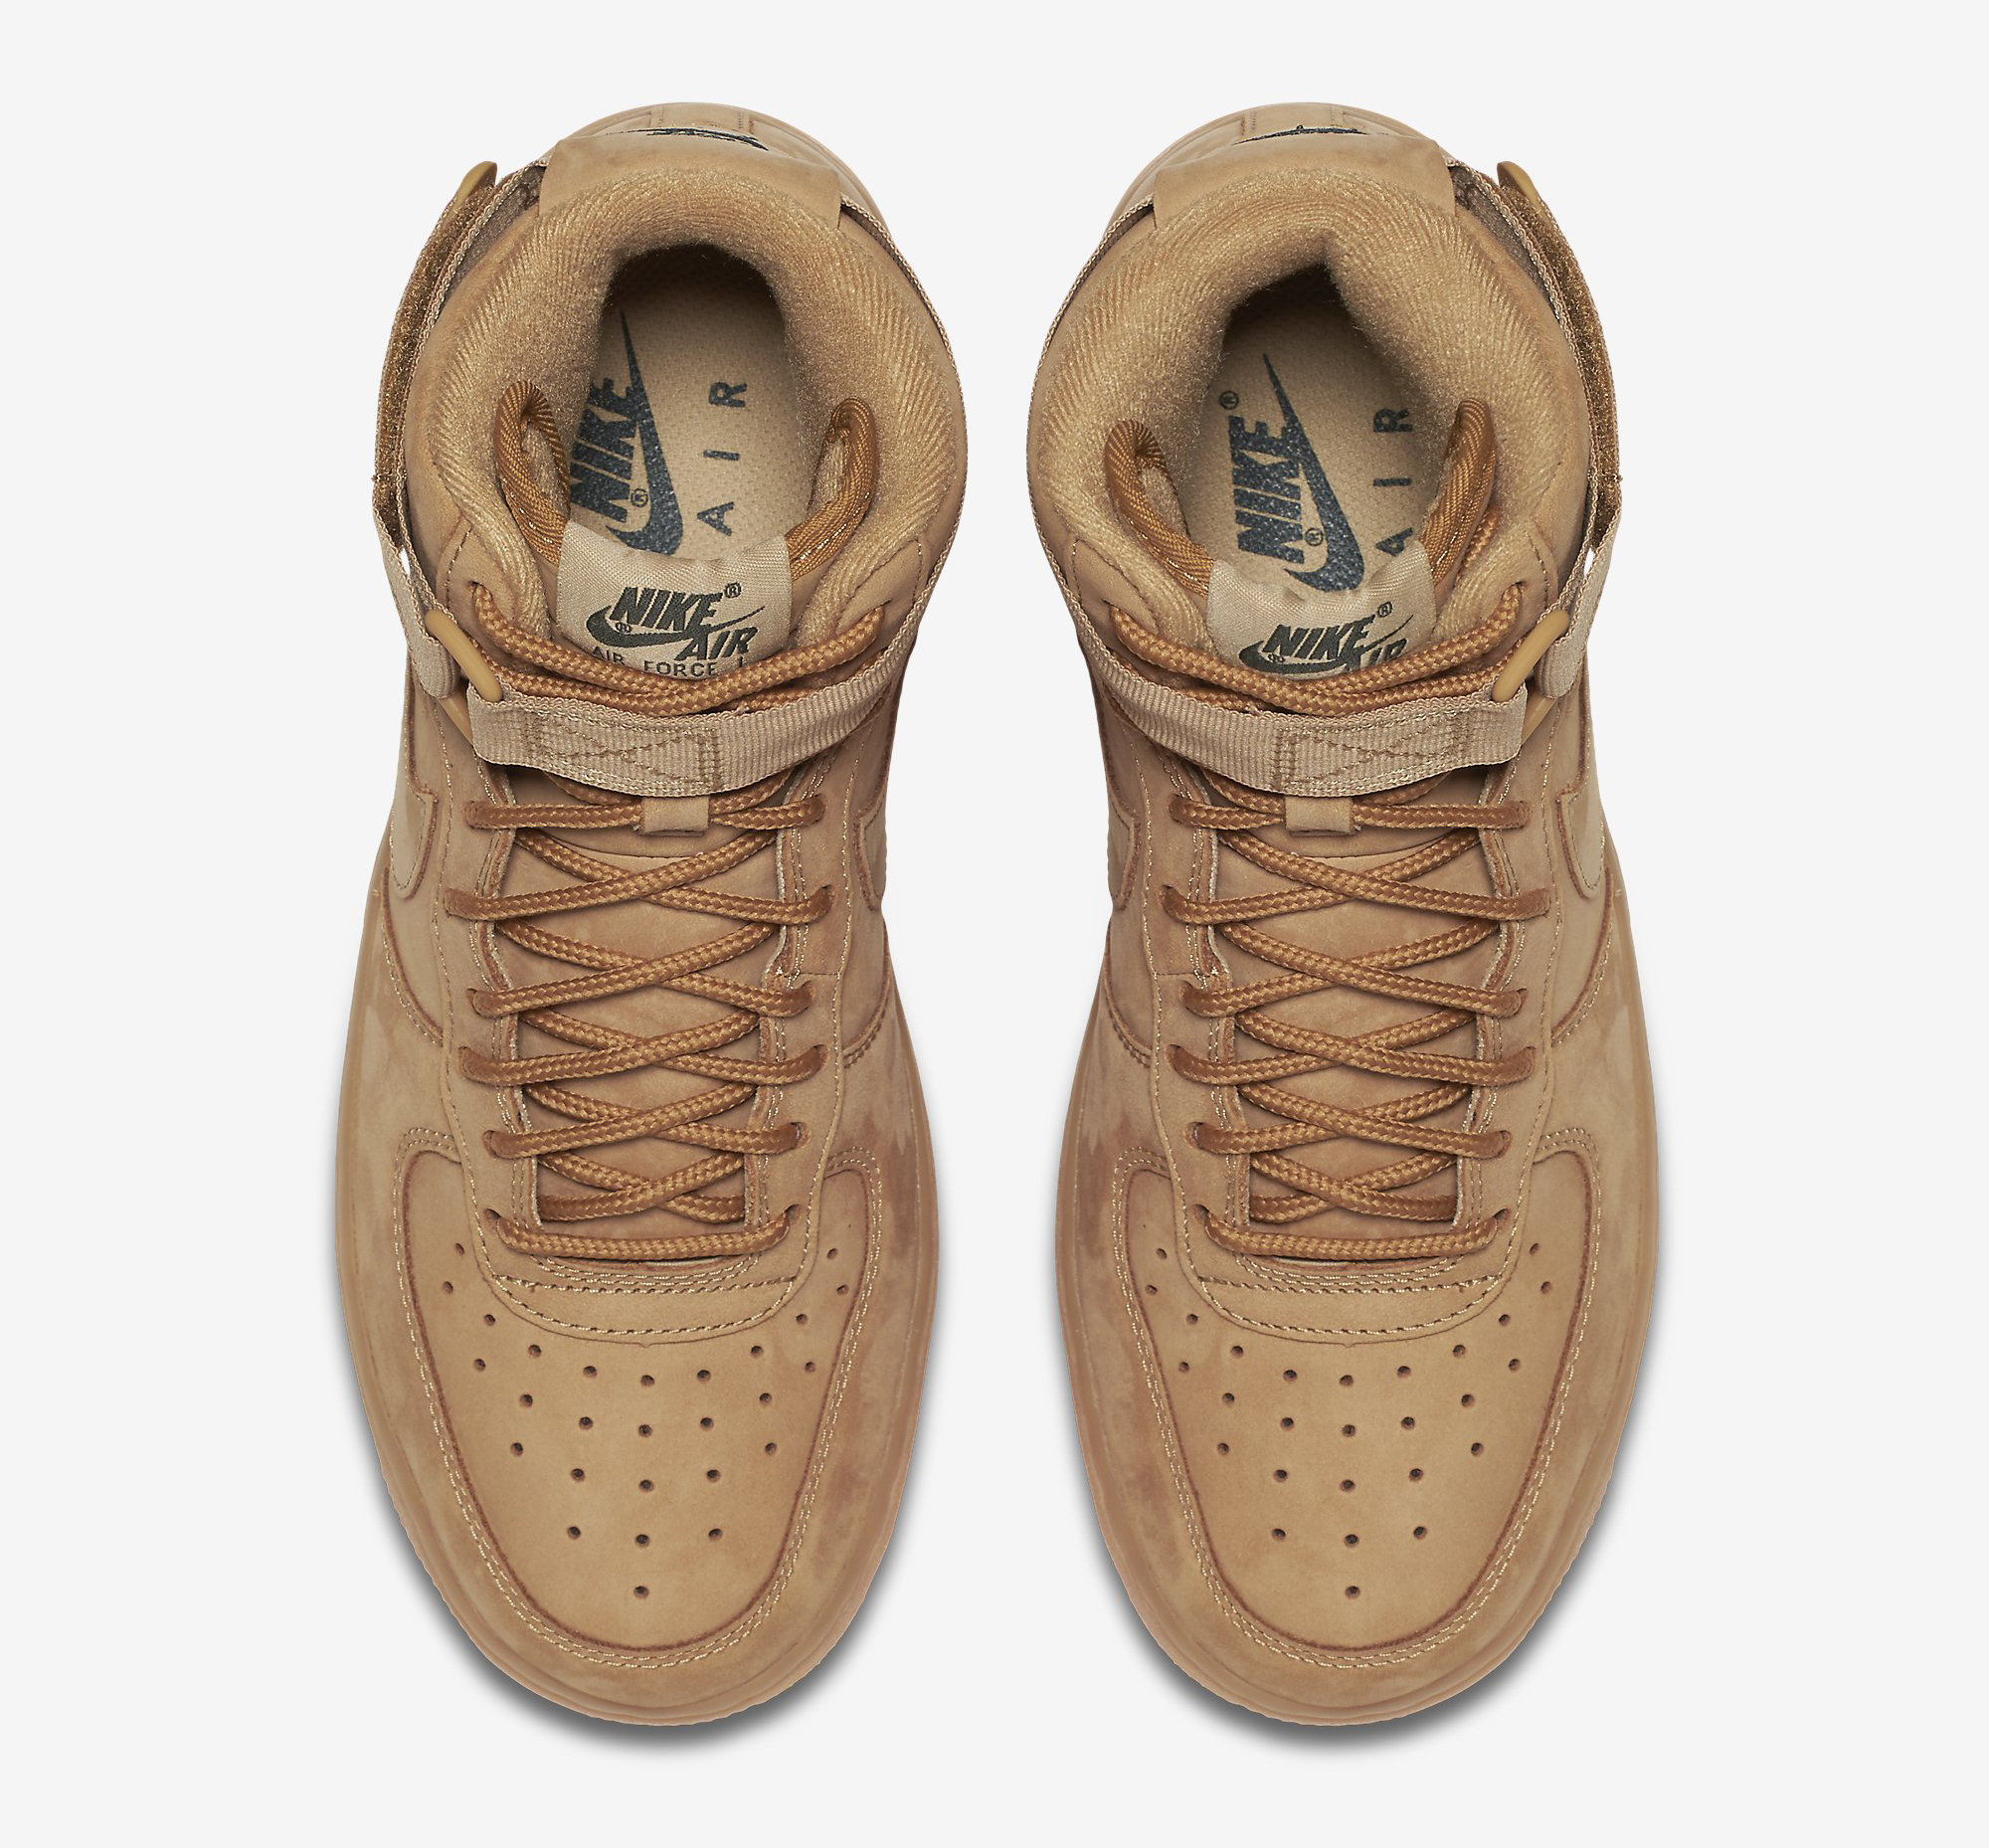 Image via Nike Wheat Nike Air Force 1 654440-200 Top c618f99320